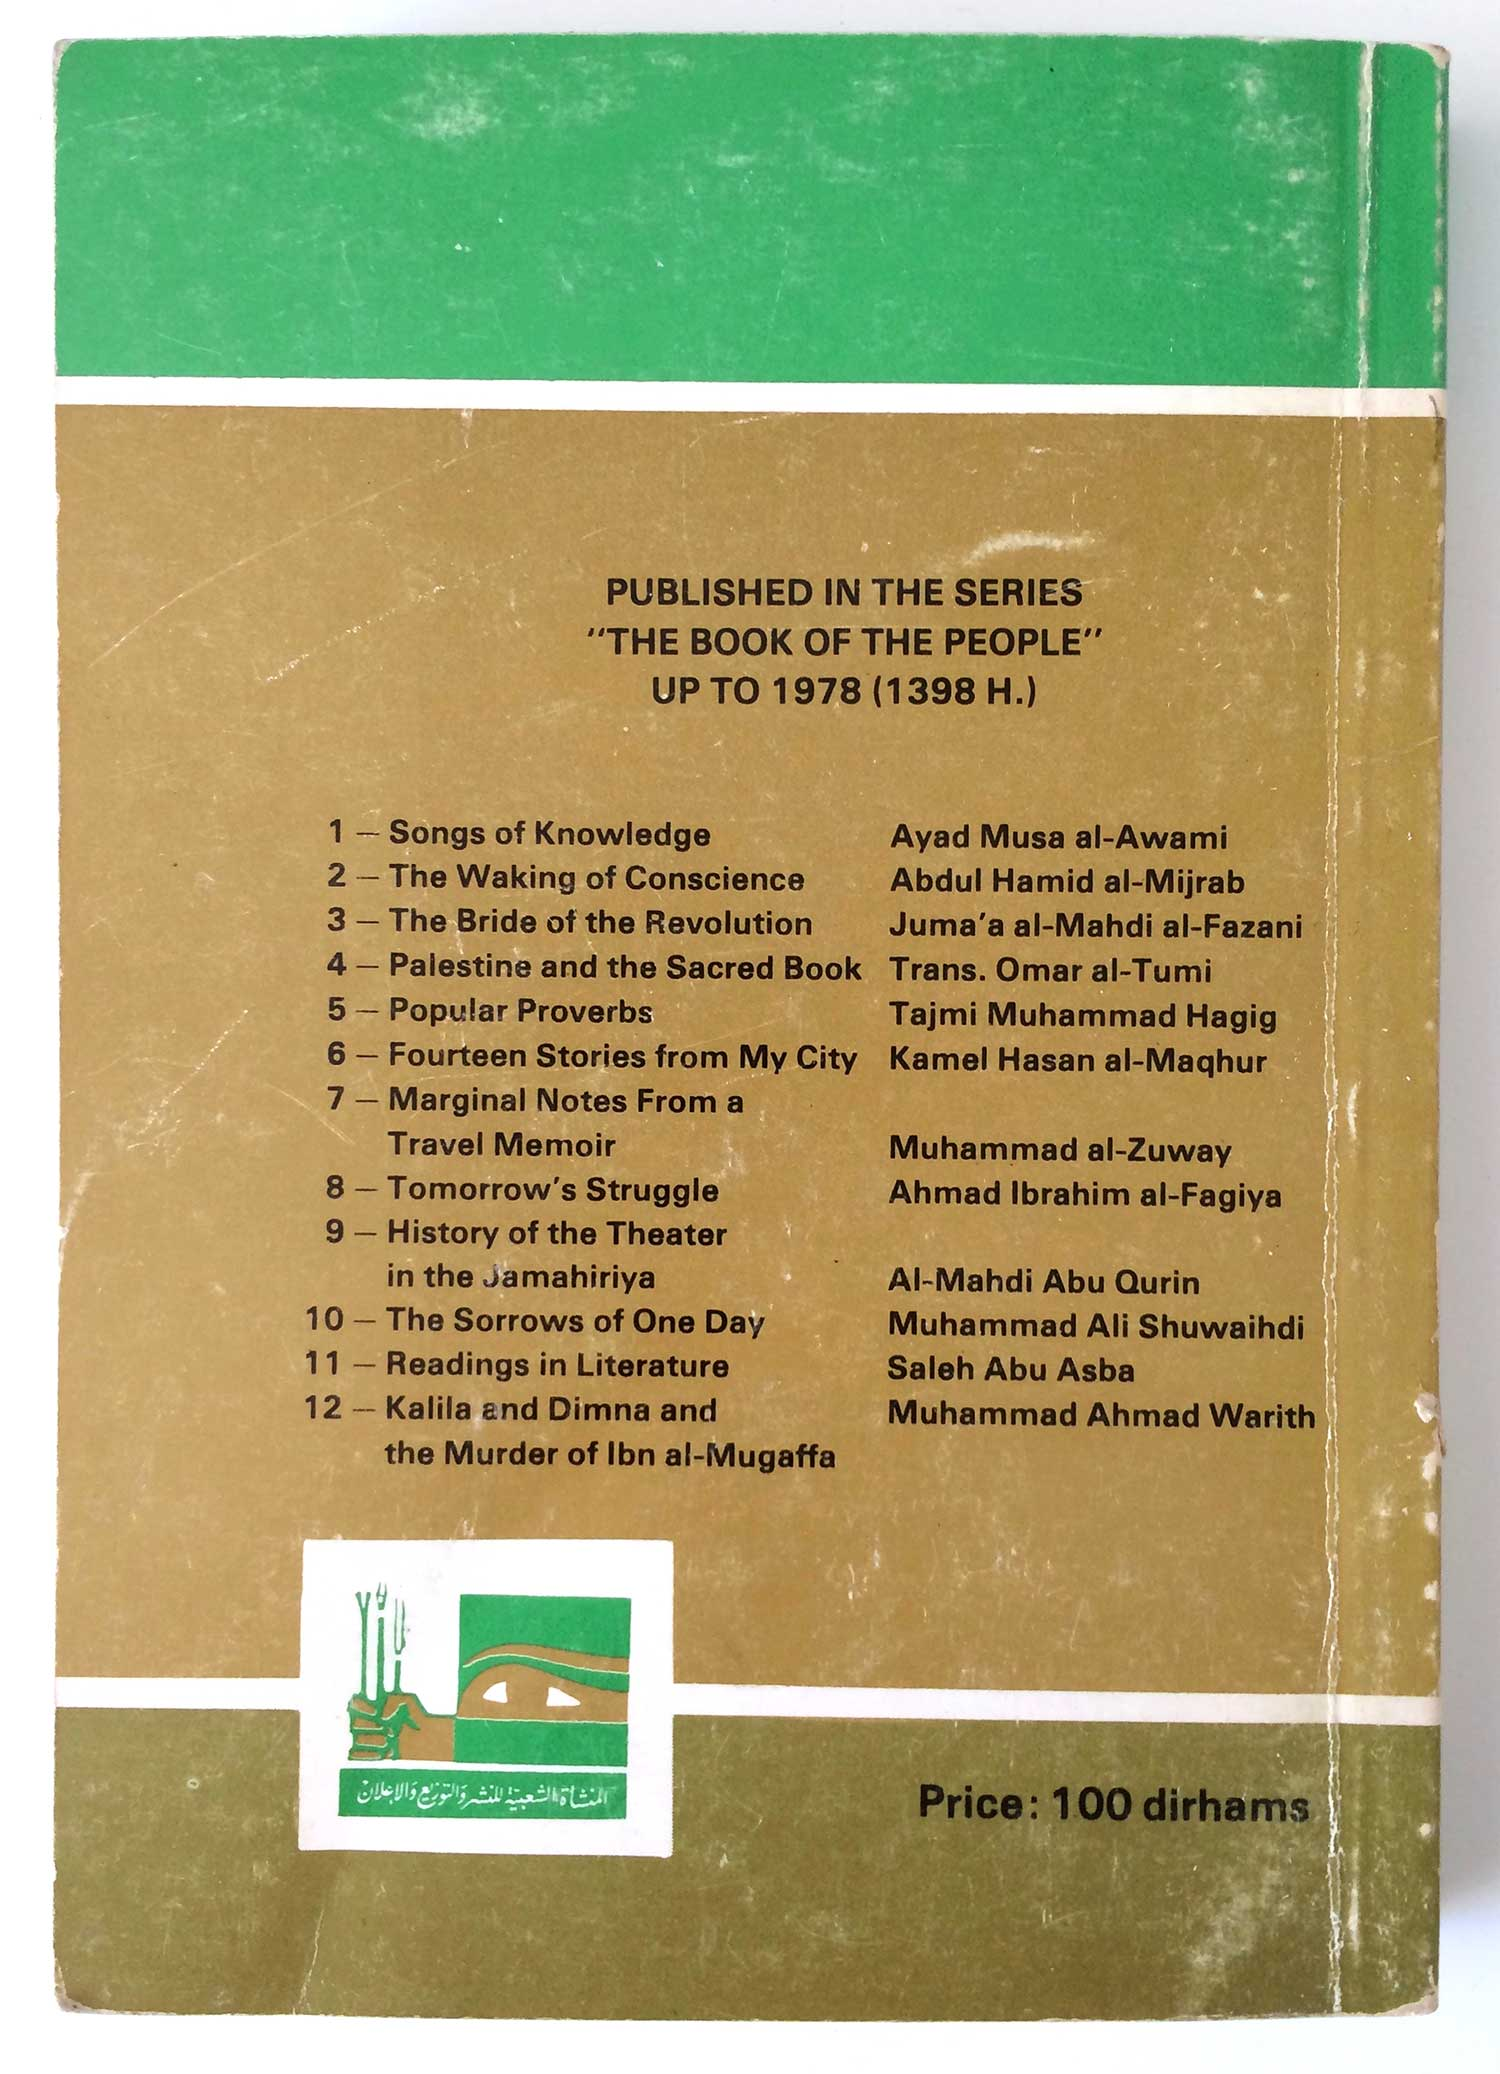 AbdulHai_Power_backcover